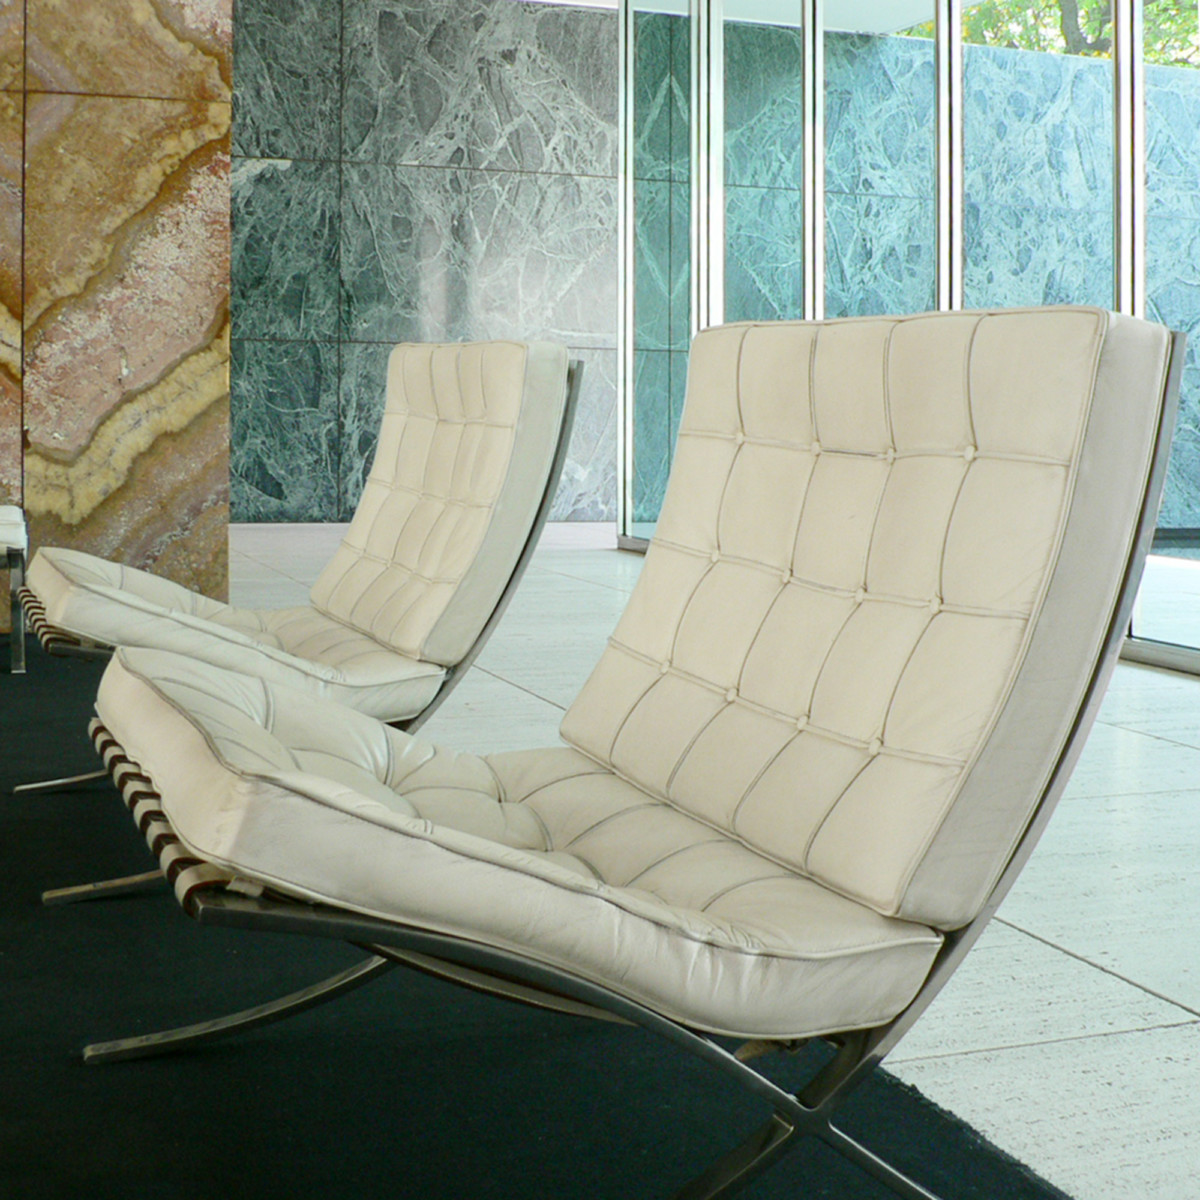 Knoll Barcelona Chair By Mies Van Der Rohe Im Design Sortiment Midmodern